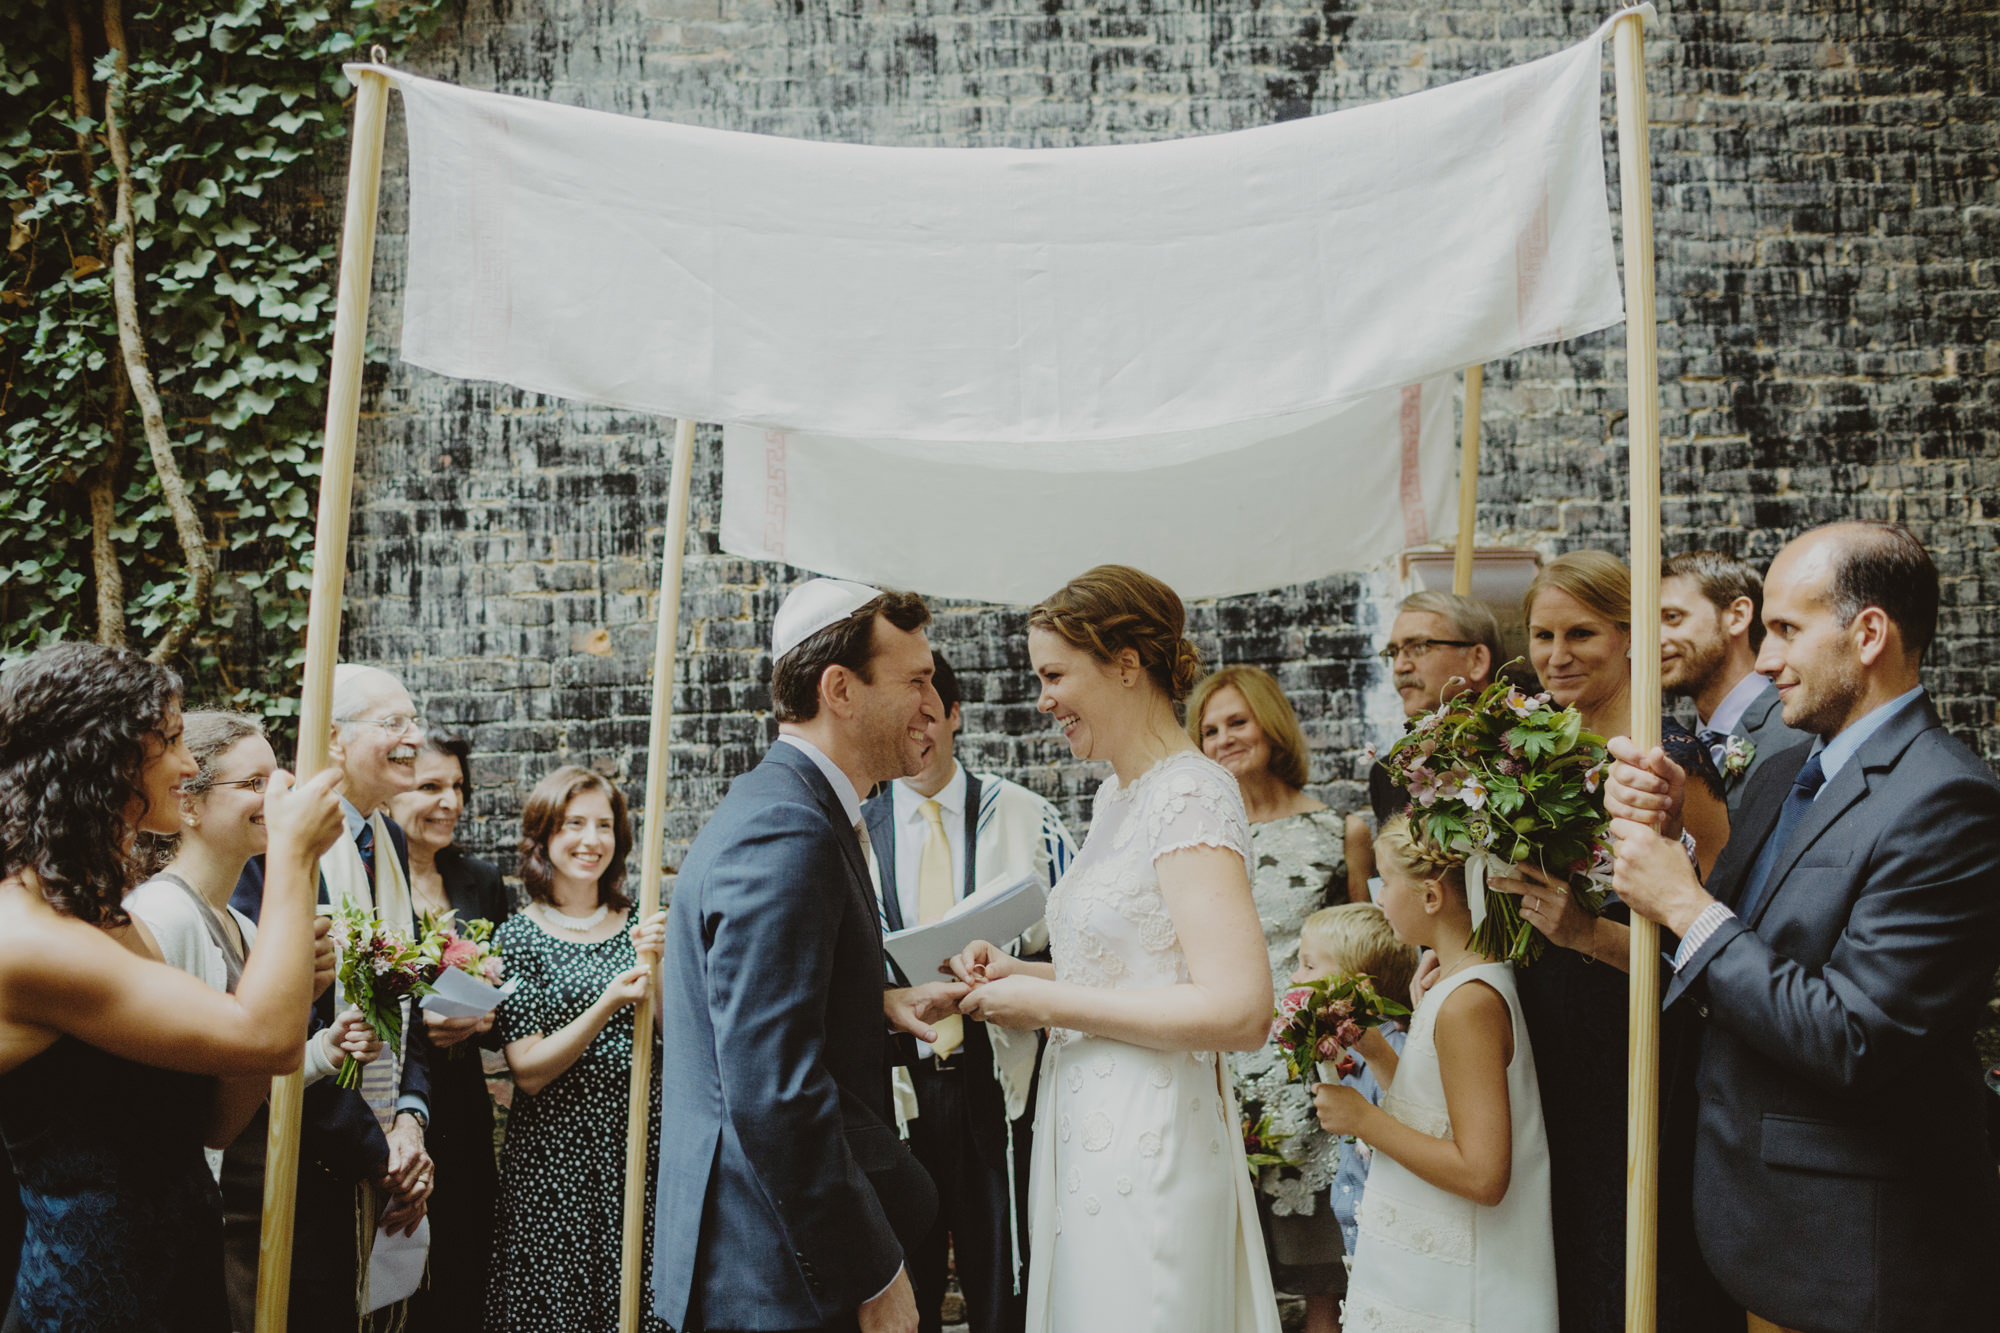 brooklyn_wedding_flatbushfarm_sammblake_035.jpg